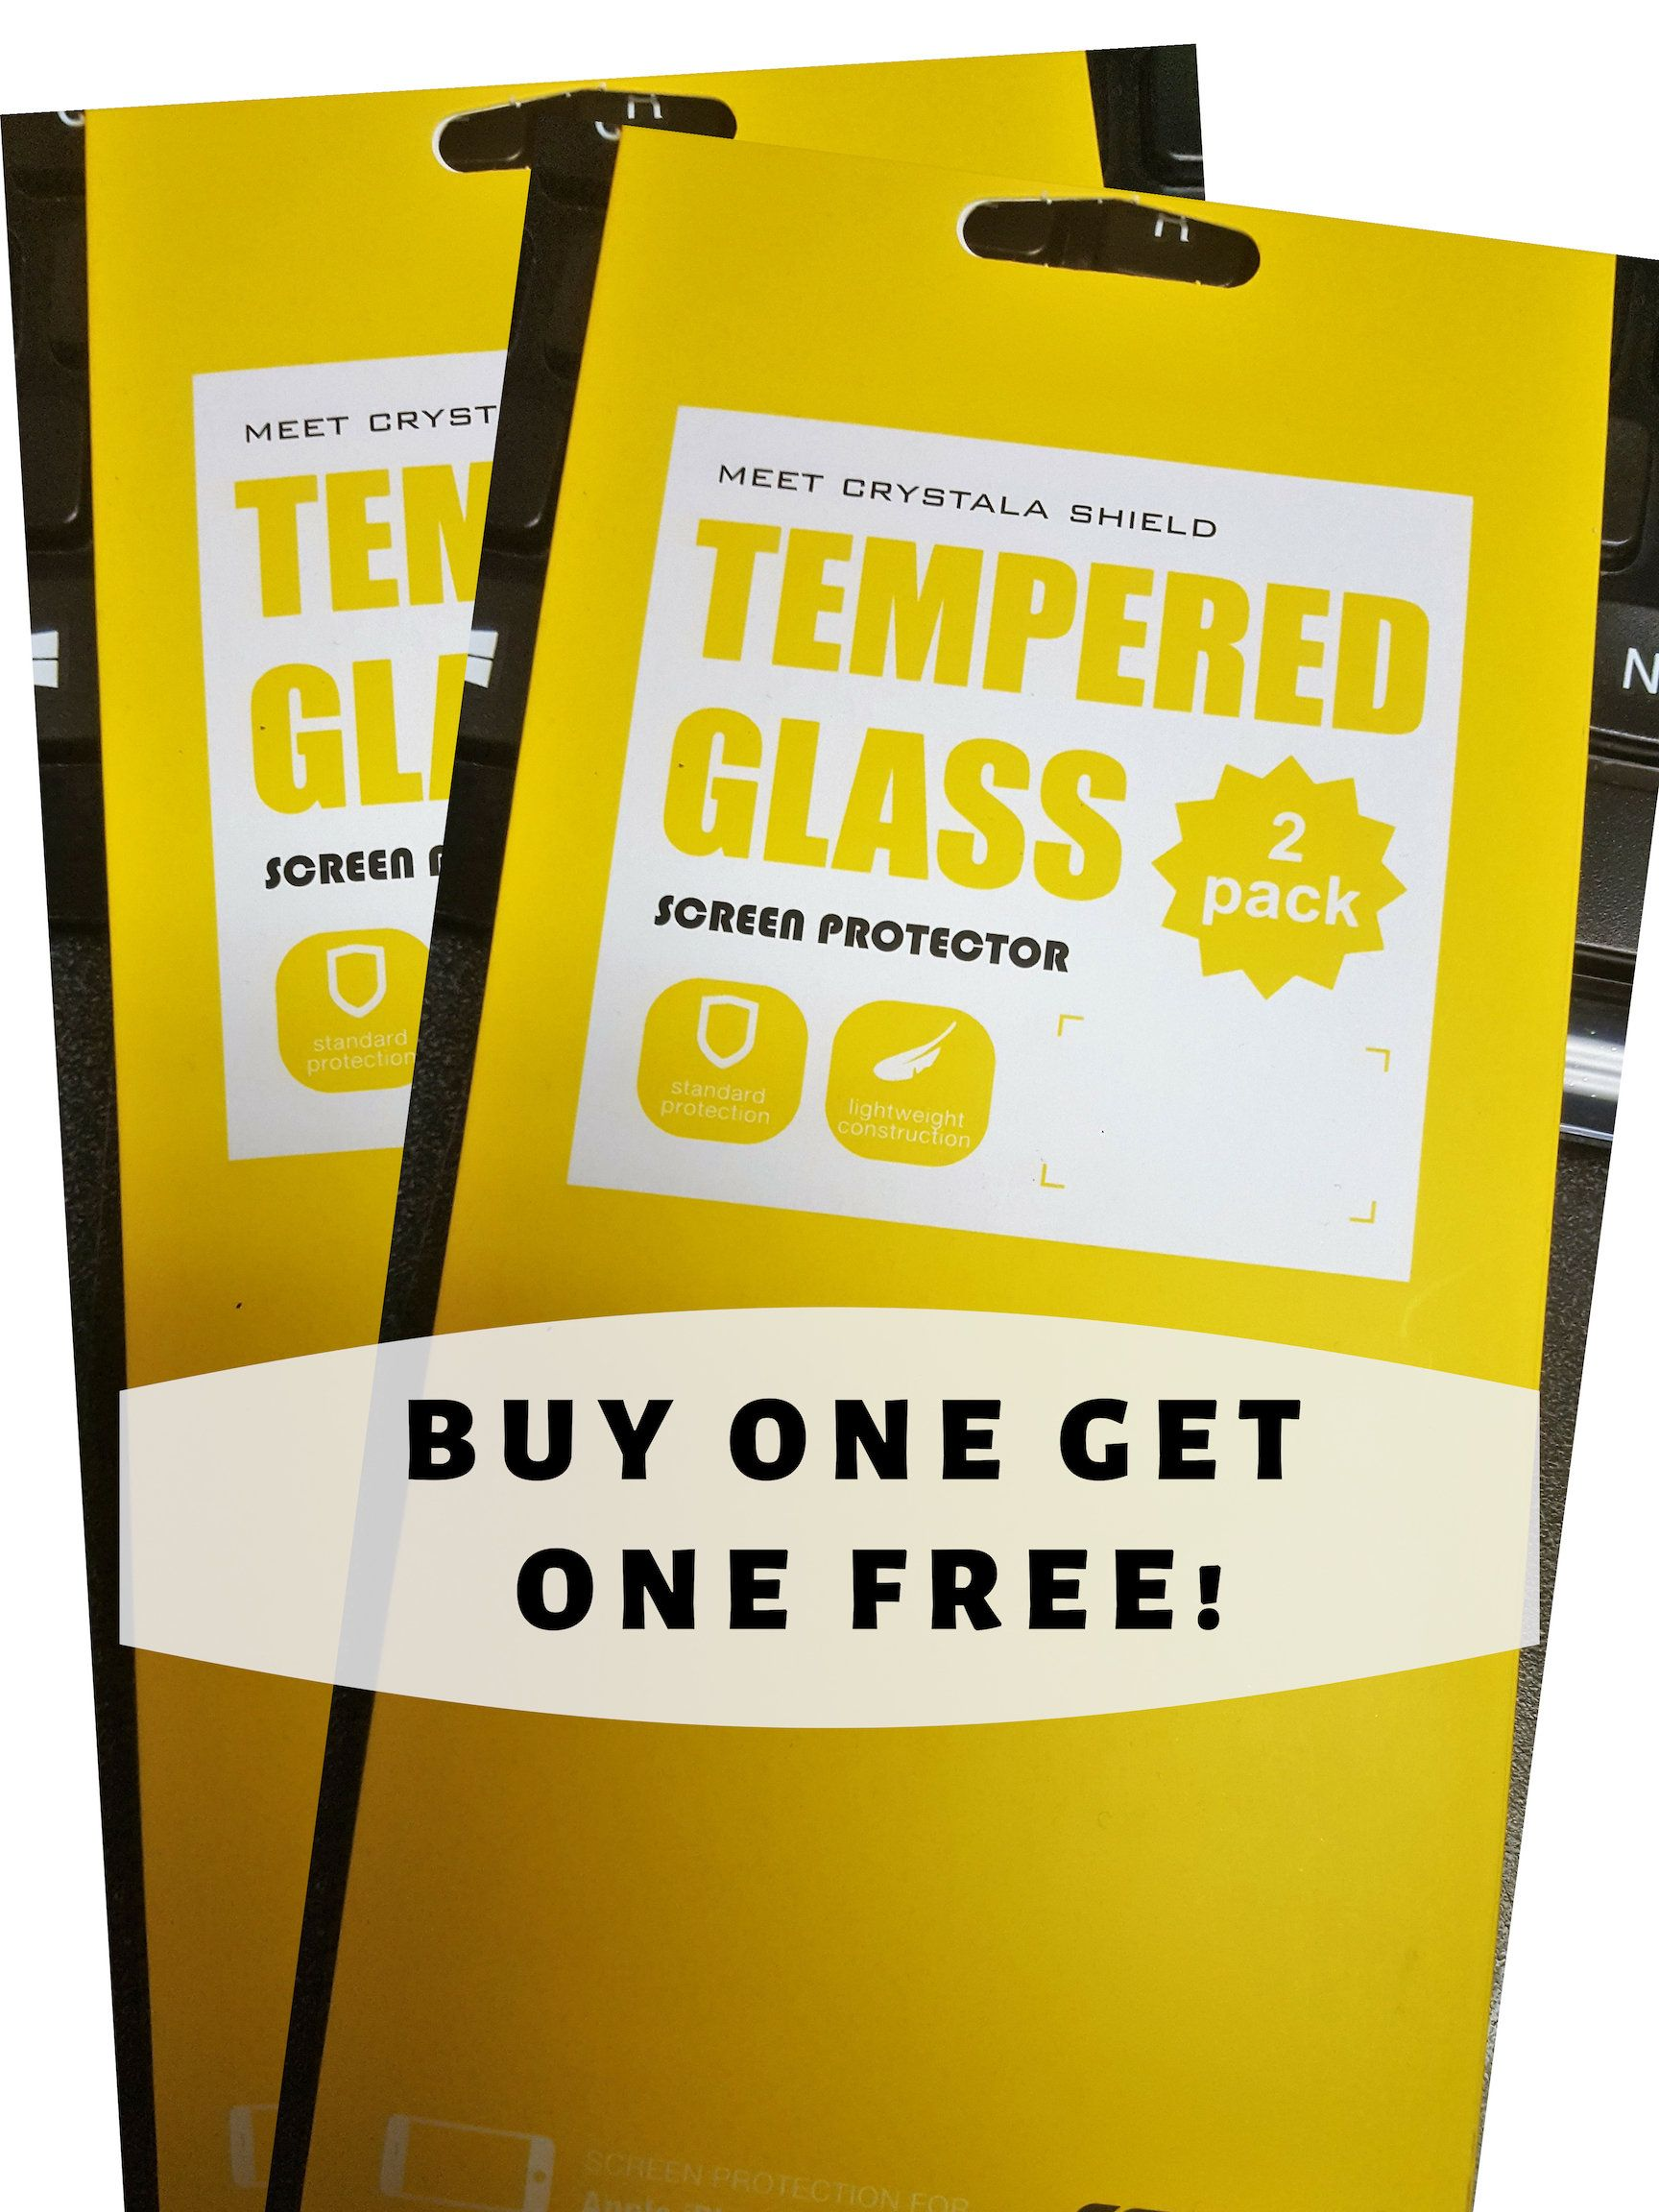 Buy One Get One Free Iphone 6 6s Tempered Glass Screen Protector Brand New Total 4 Screen Protectors 2 Packs Of 2 Glass Screen Protector Iphone Screen Protector Iphone Iphone 6s Screen Protector